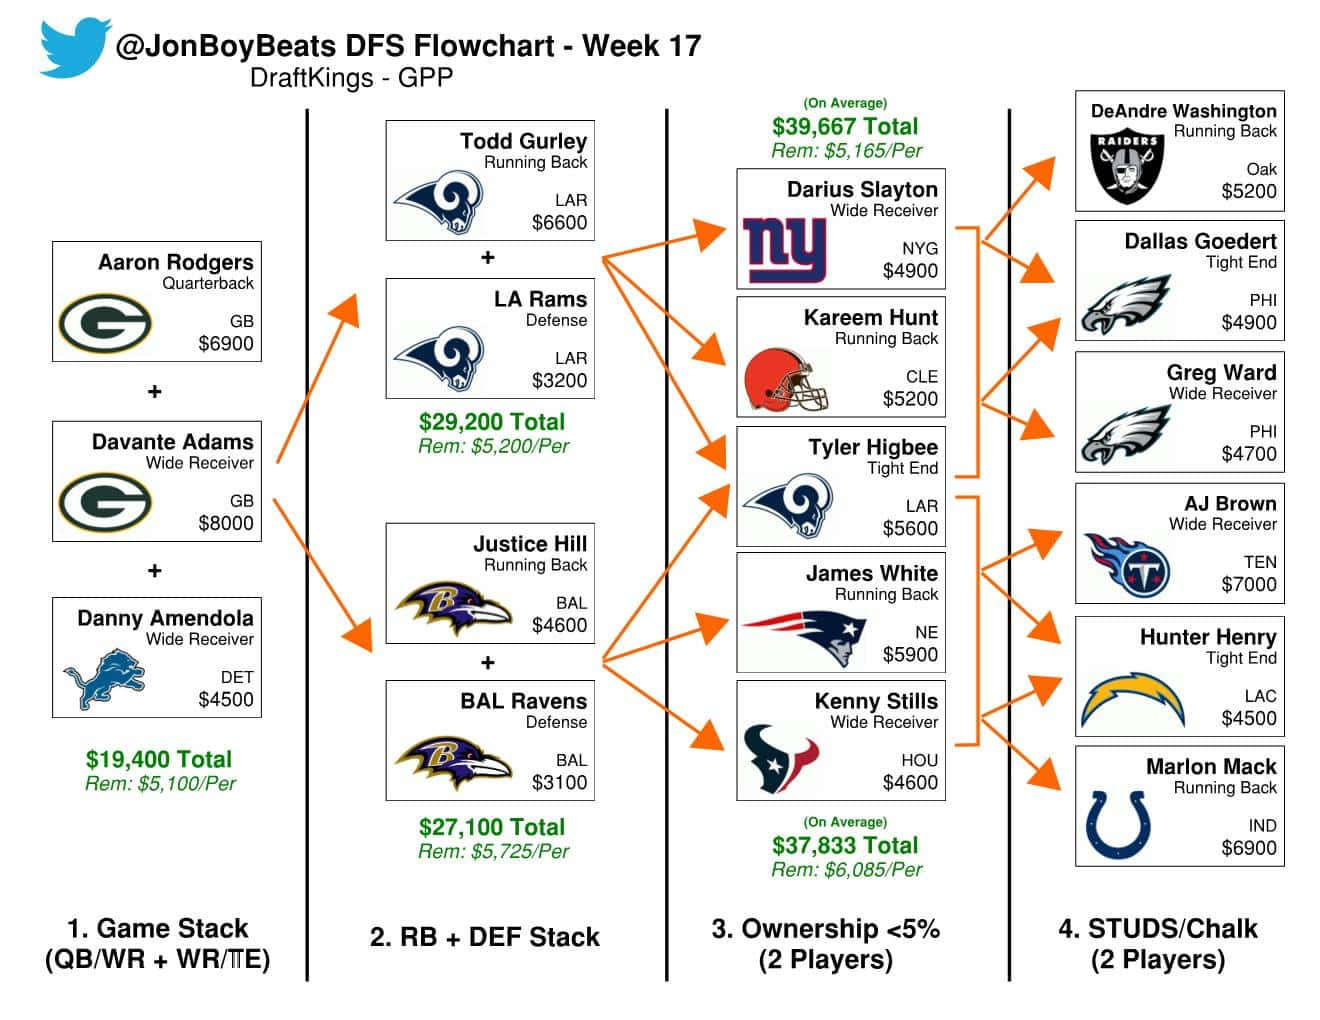 Week 17 Nfl Dfs Flowcharts Draftkings Picks Sunday Gpps And Cash Sports Gambling Podcast